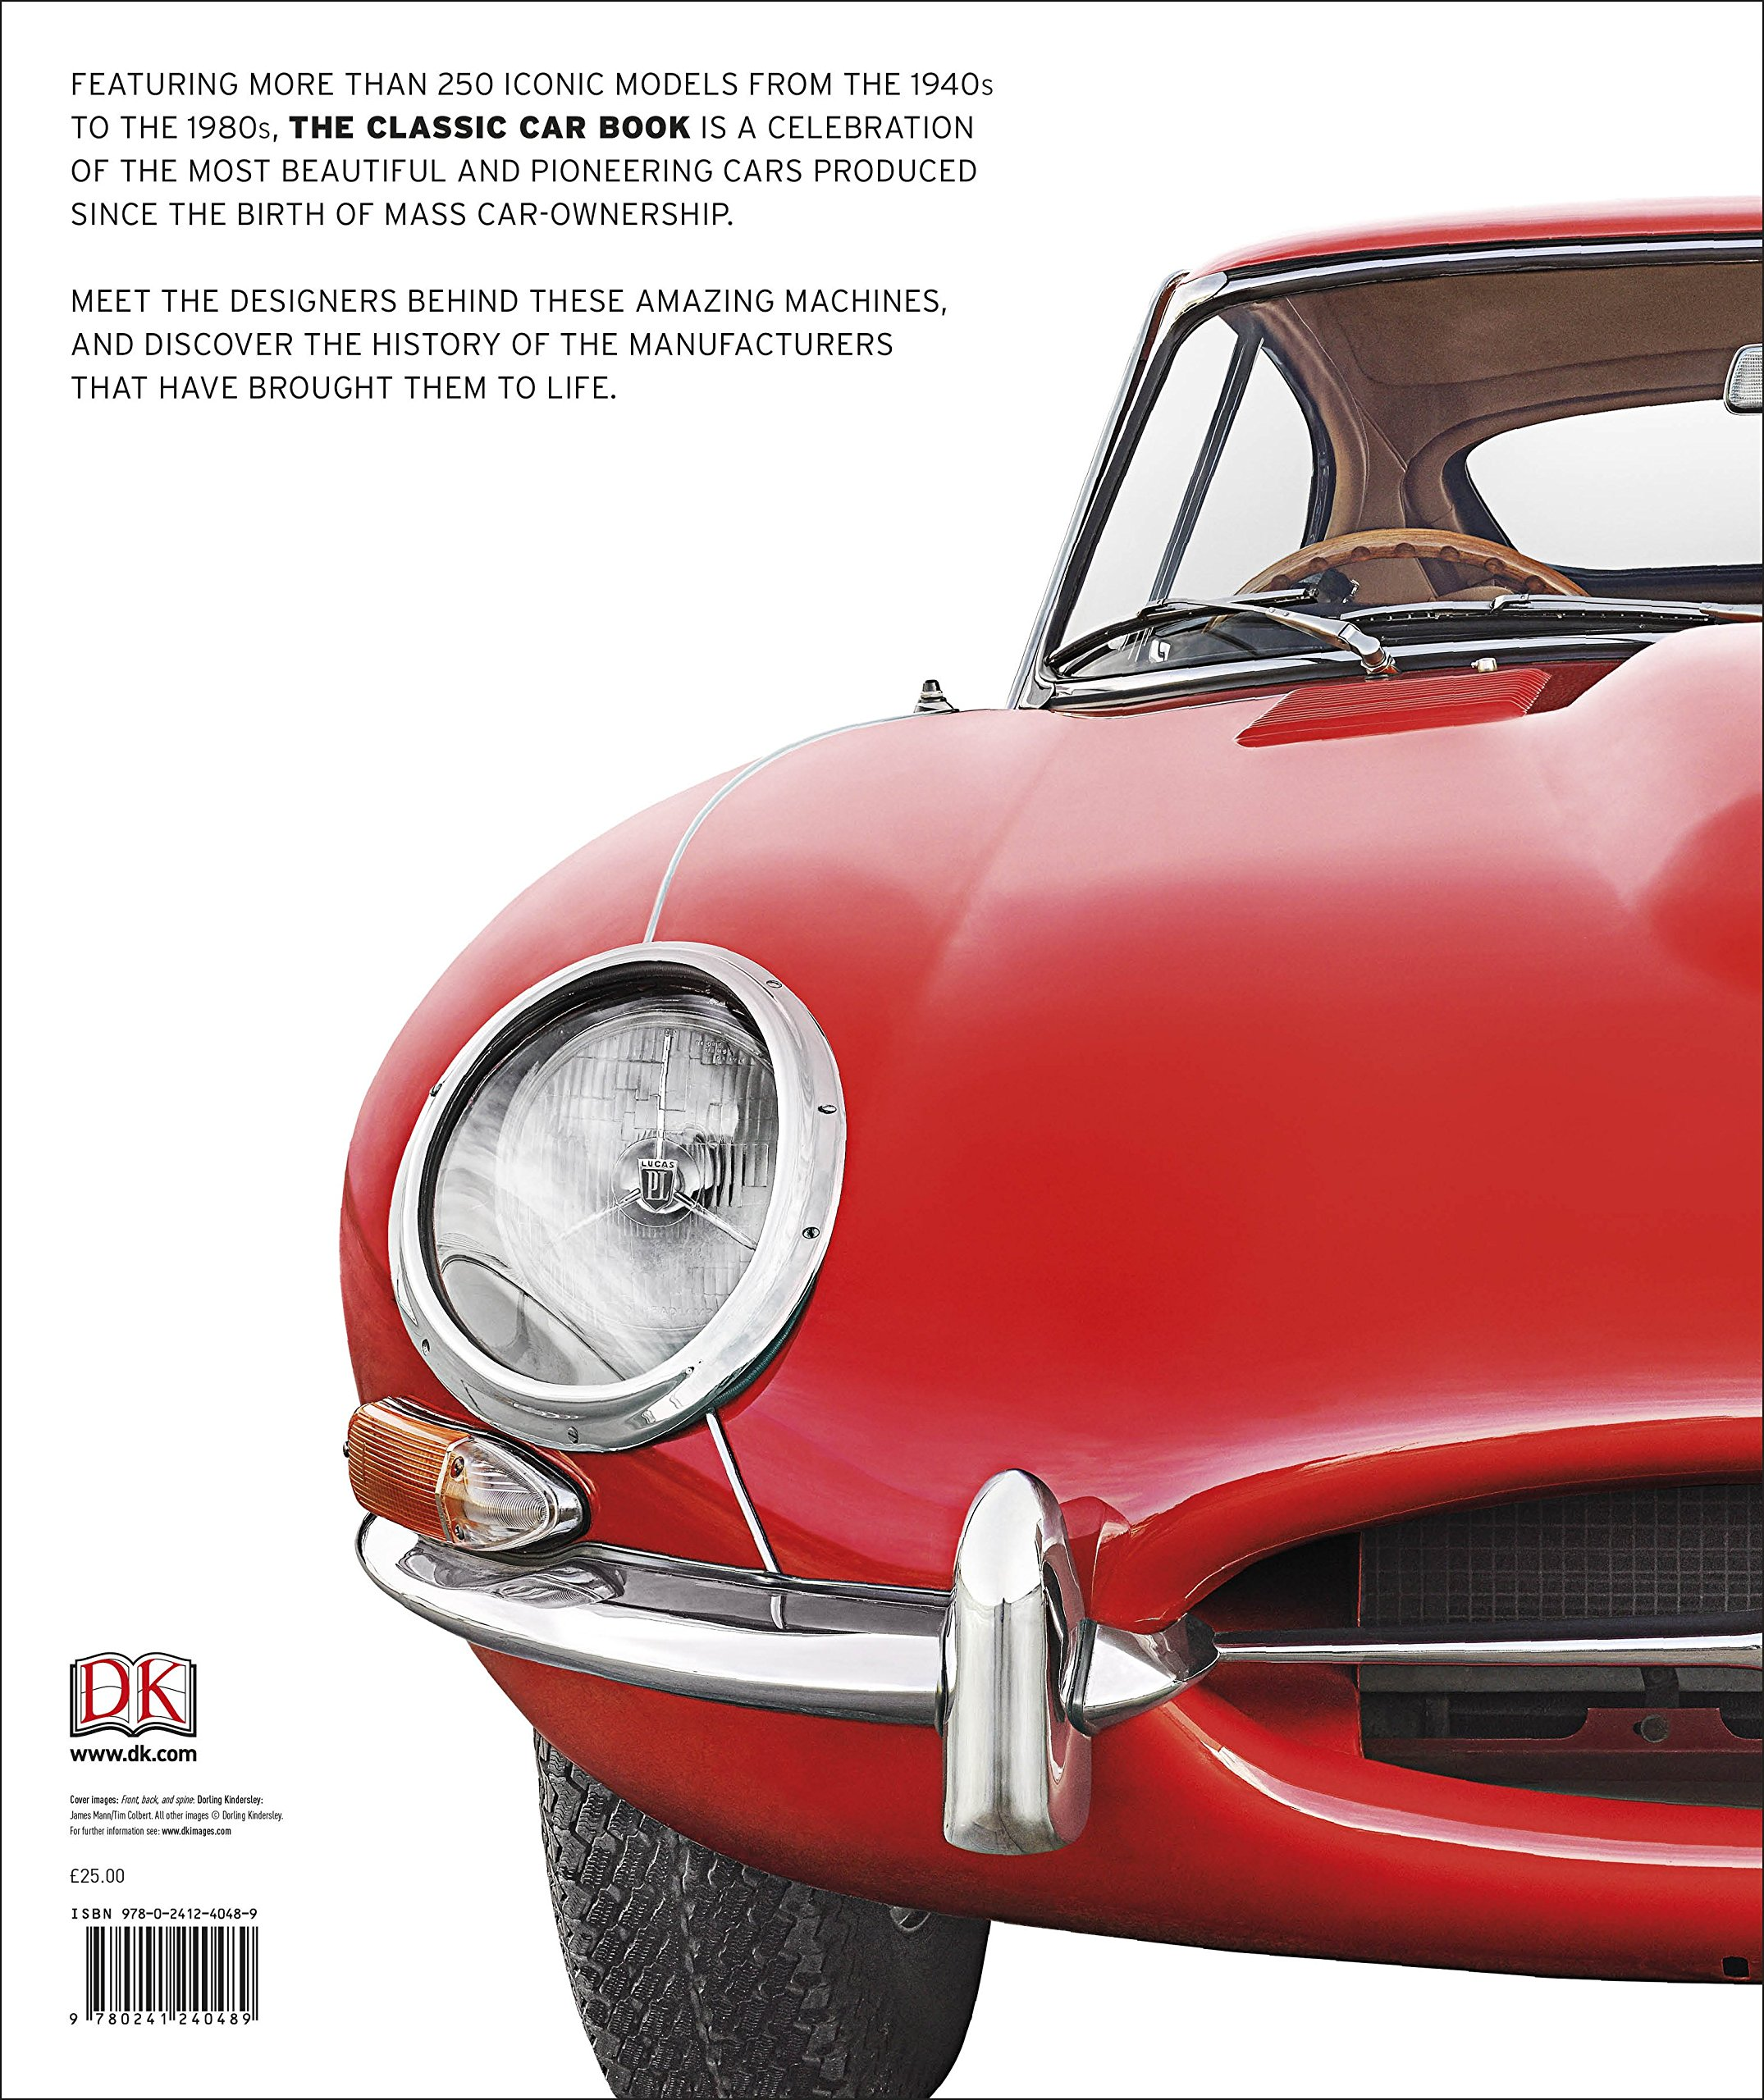 The Classic Car Book: The Definitive Visual History: Amazon.co.uk ...